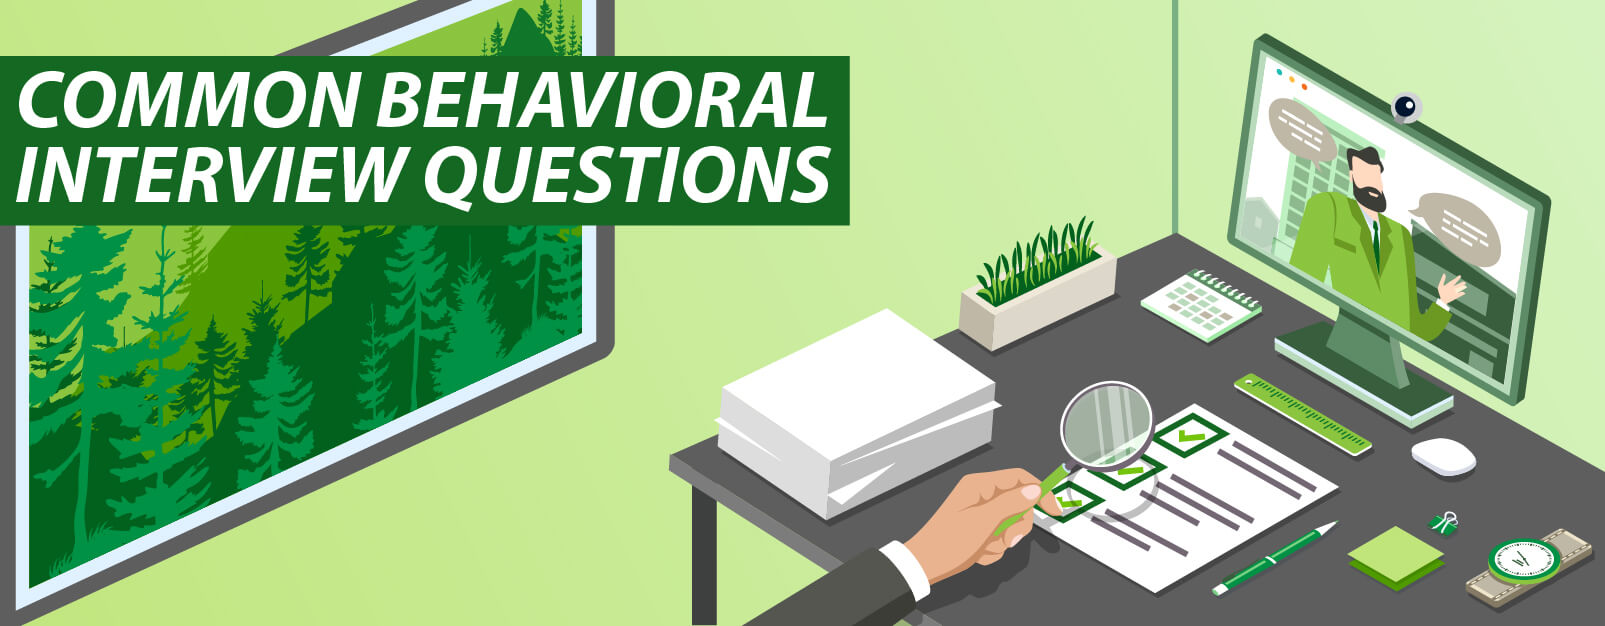 Common Behaviroral Interview Questions